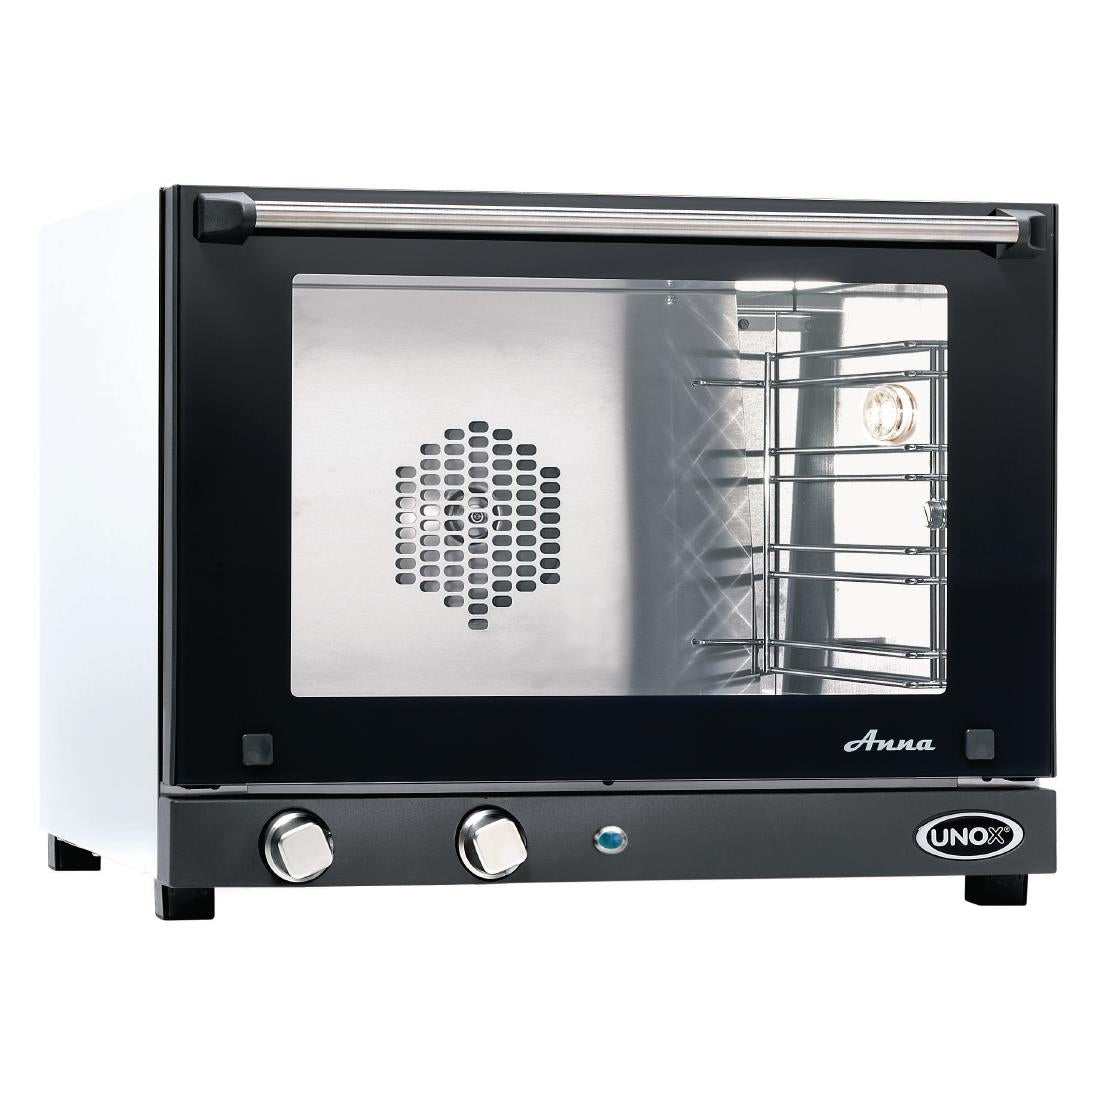 UNOX CONVECTION OVEN ANNA MODEL - Mabrook Hotel Supplies